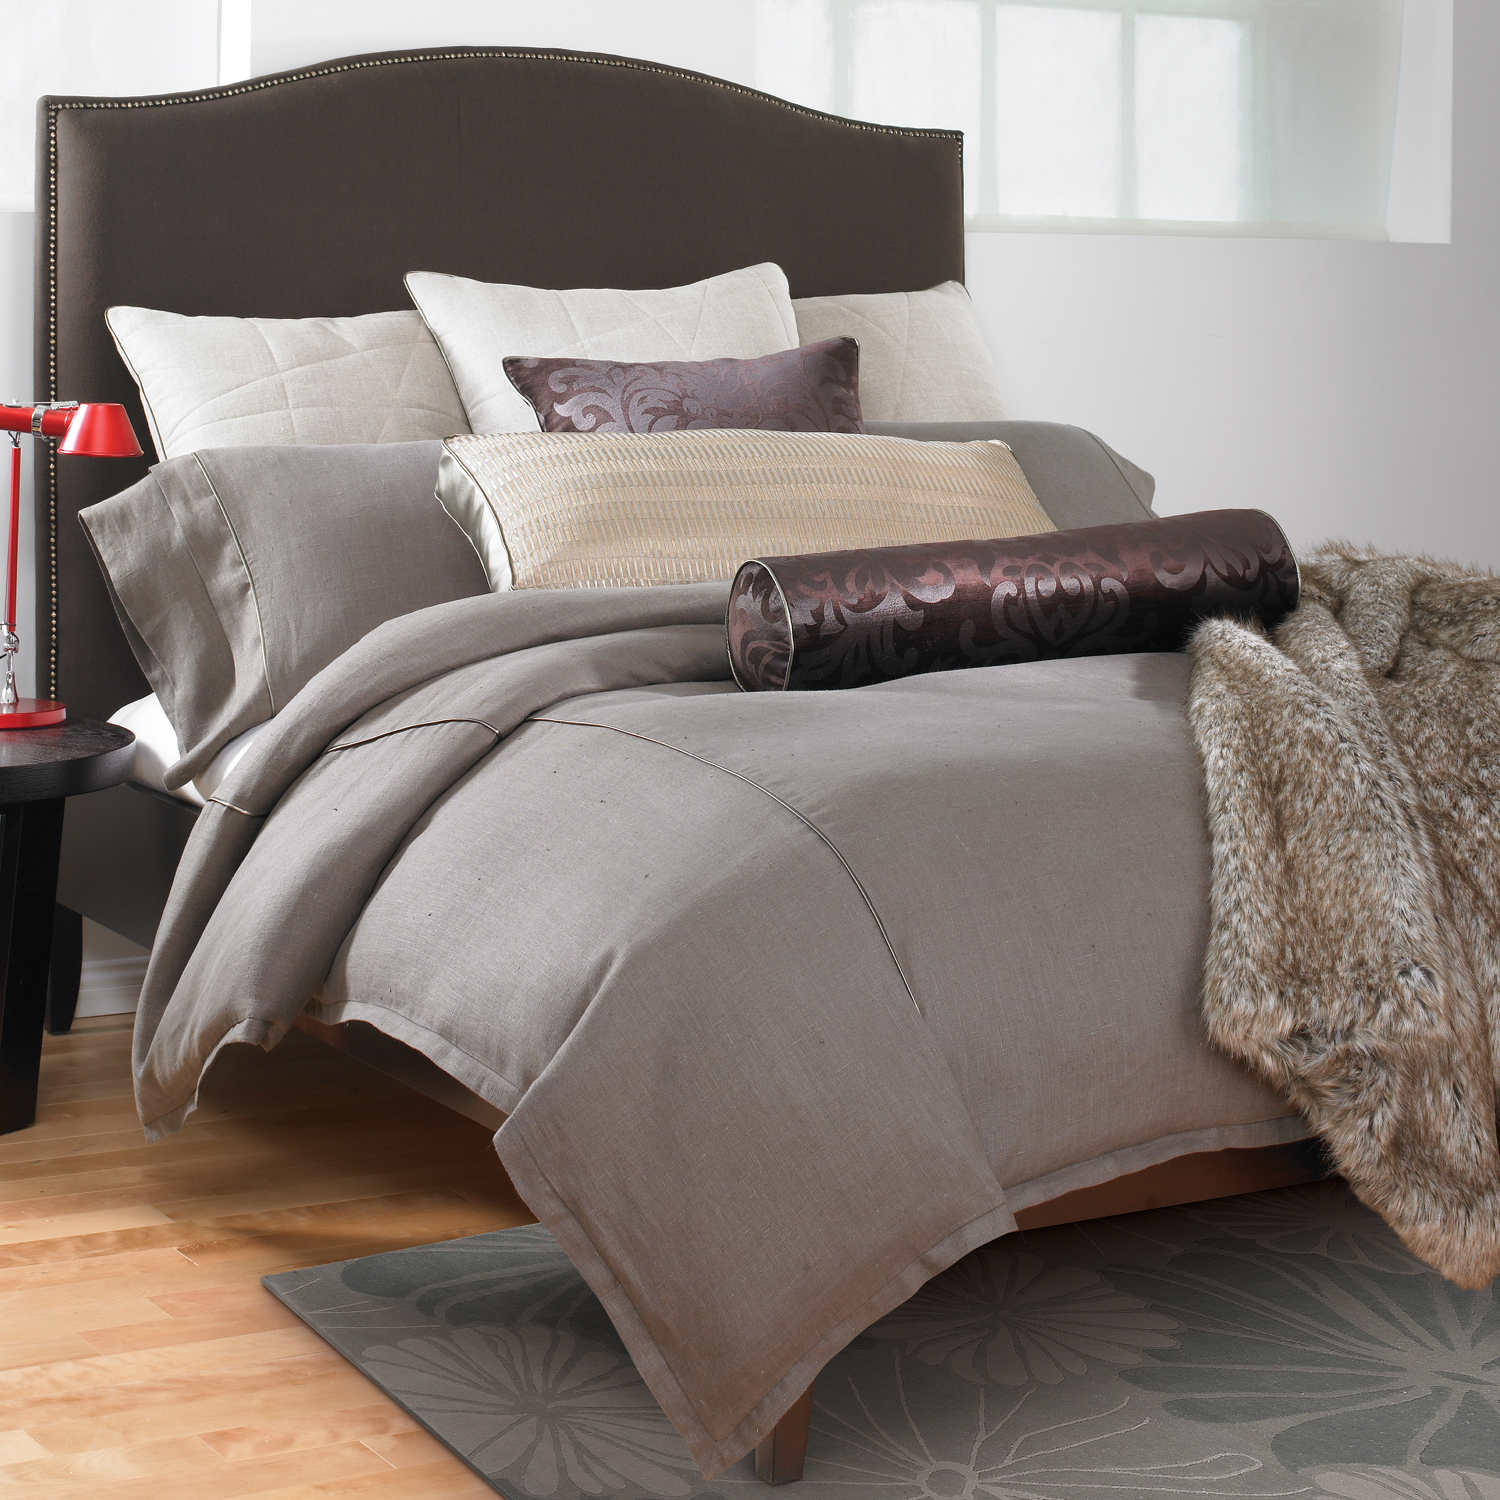 wildcat territory bedding earth collection -